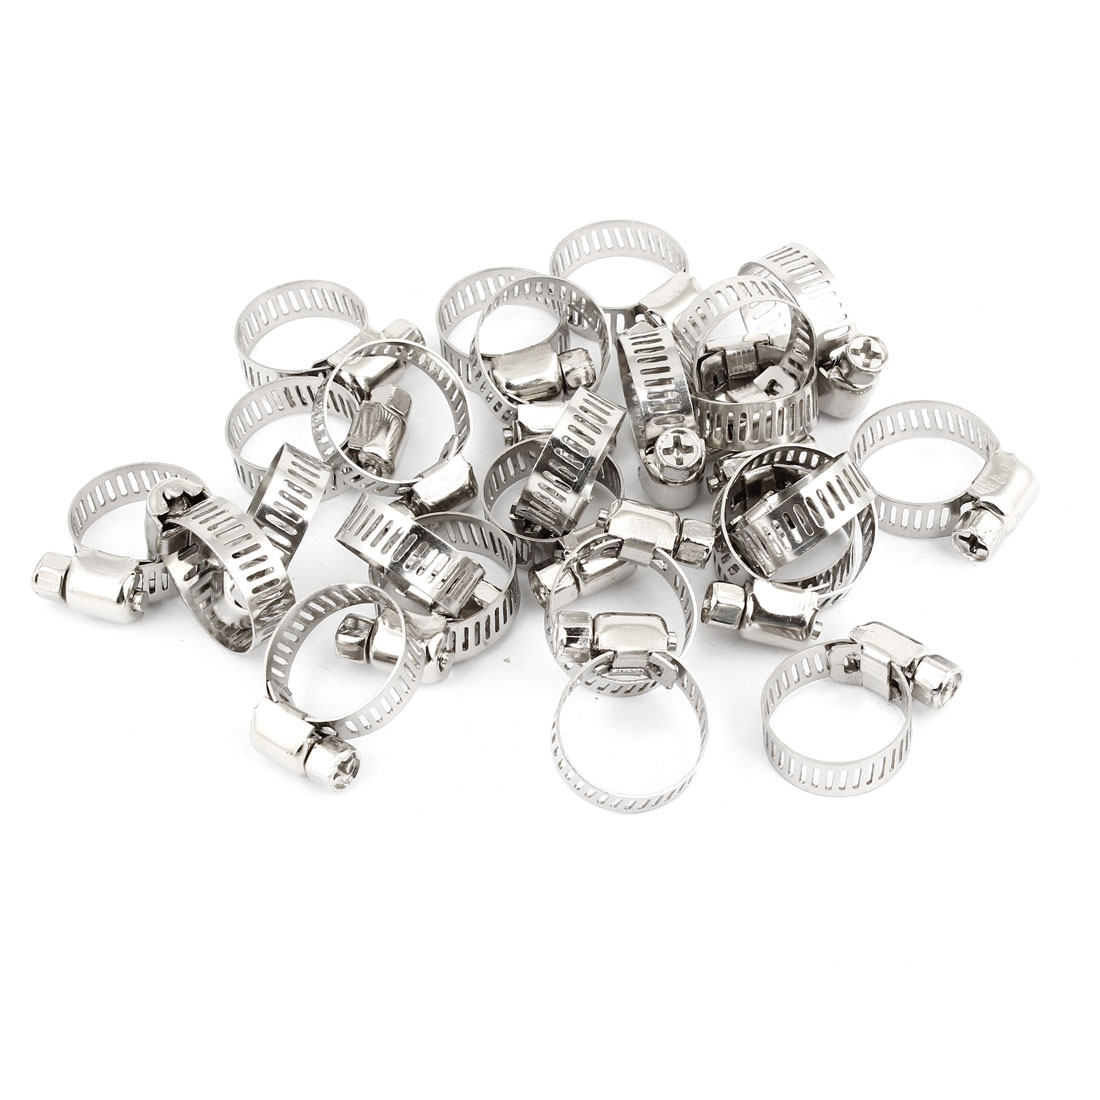 25 Pcs Stainless Steel Band Worm Gear Hose Clamp 13-19mm